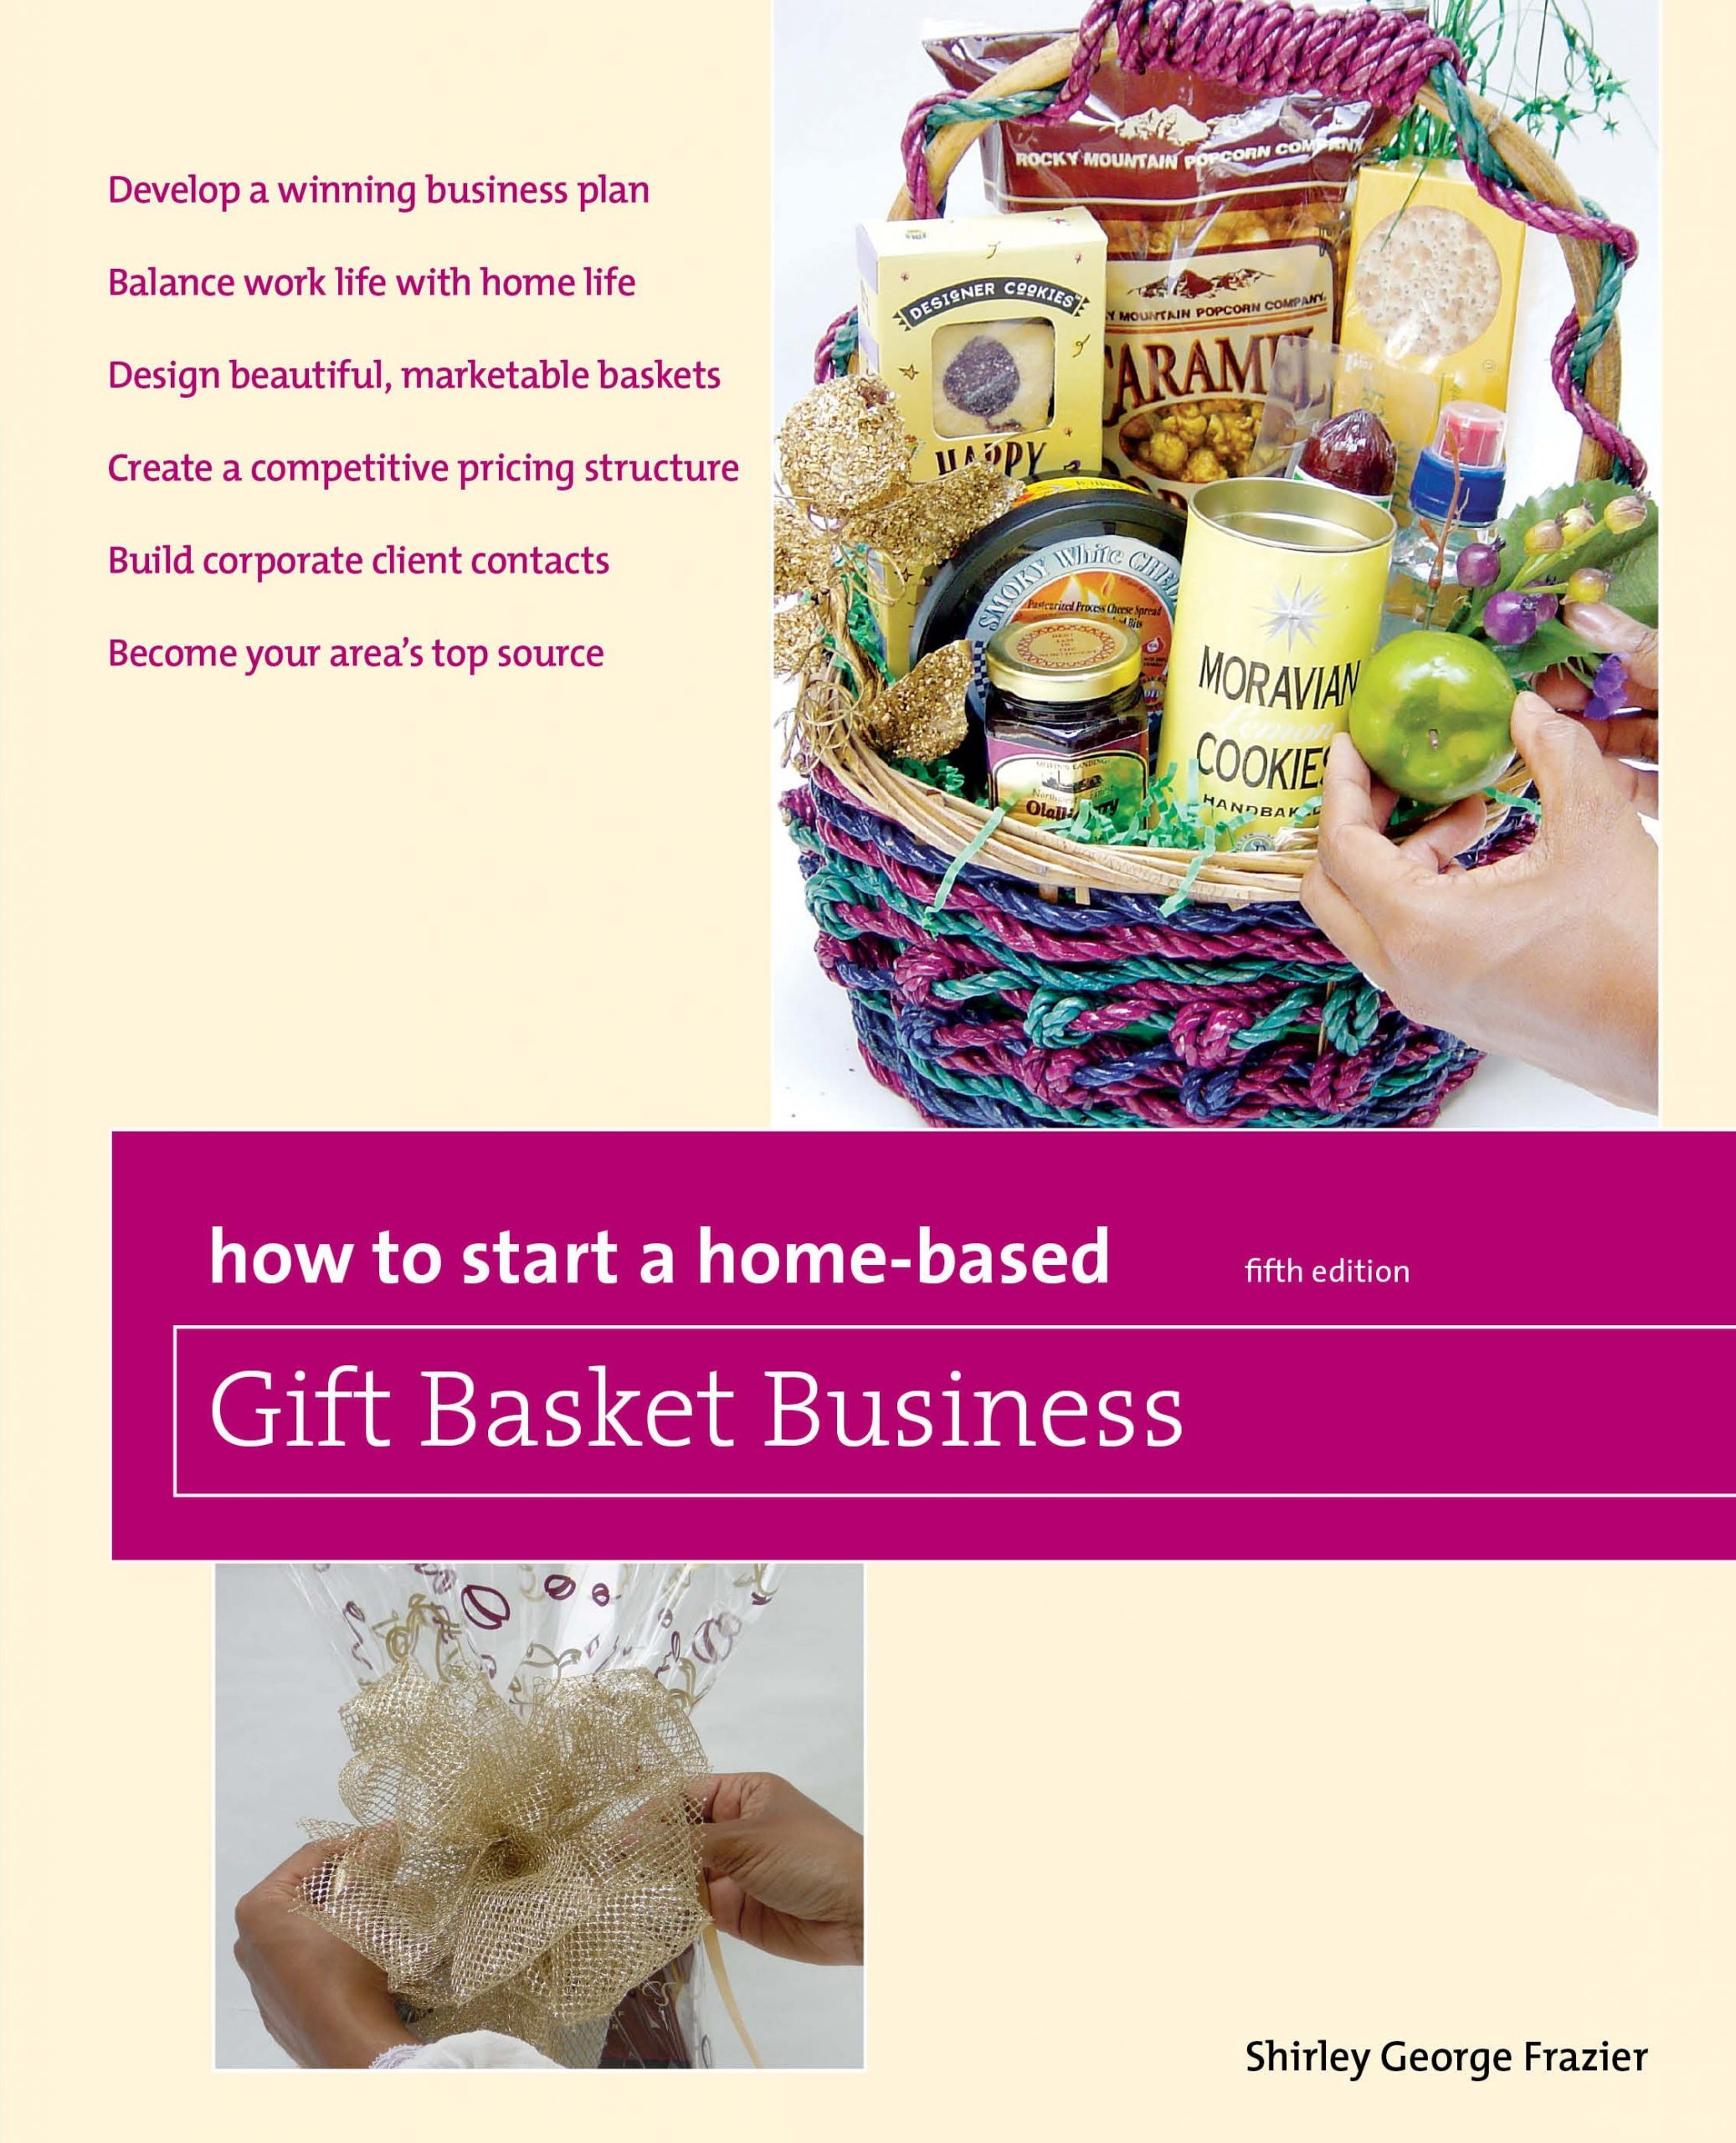 Book - How to Start a Home-Based Gift Basket Business, by Shirley George Frazier. All rights reserved.